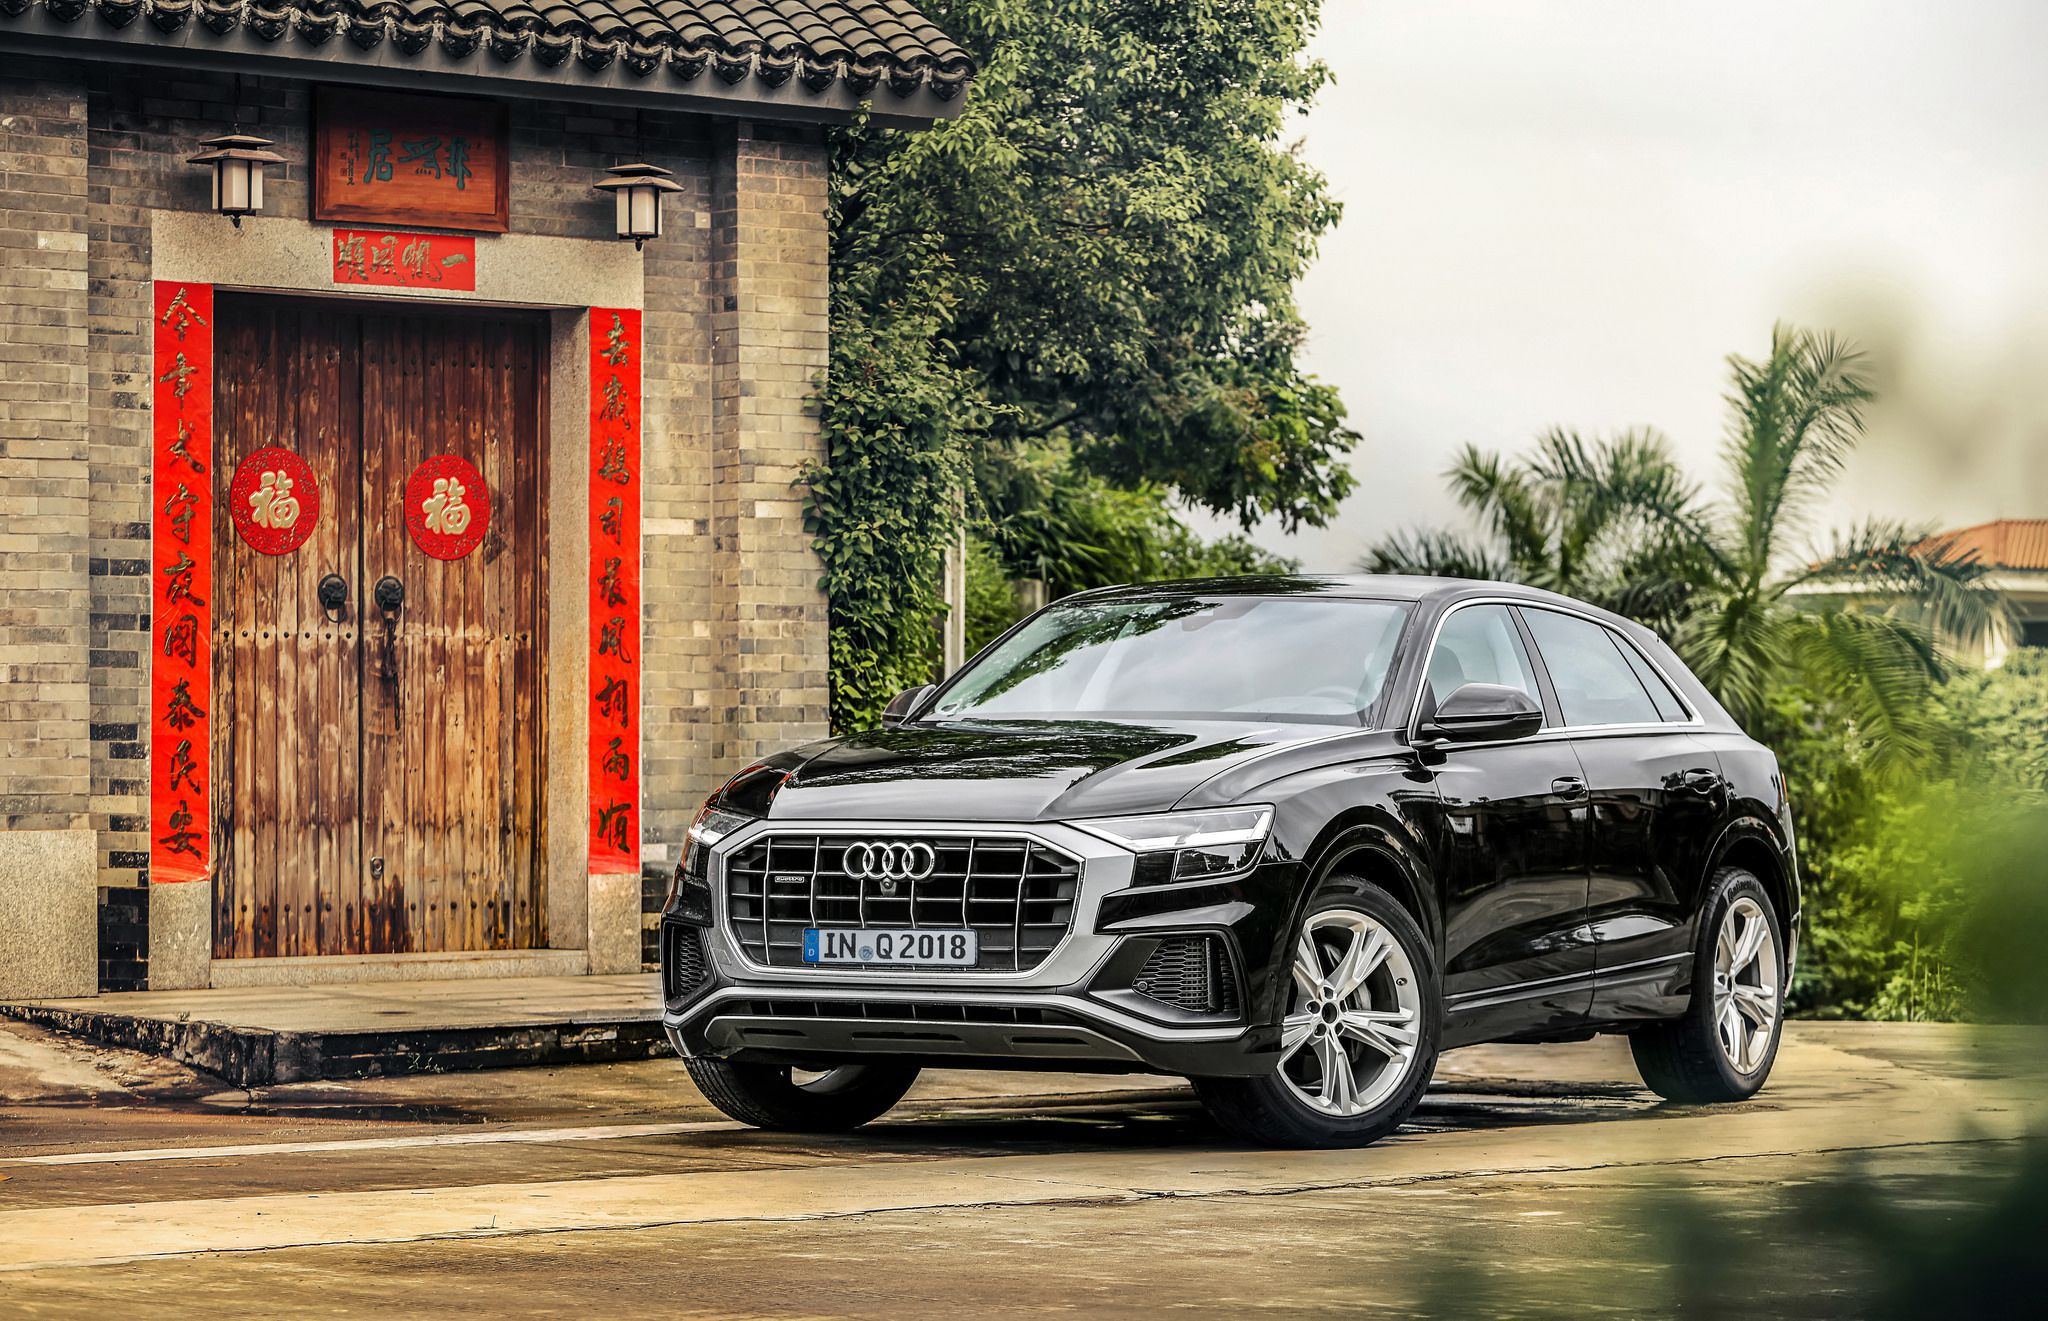 14 Images About Audi Q8 2019 In Hd On Wallpapersqq